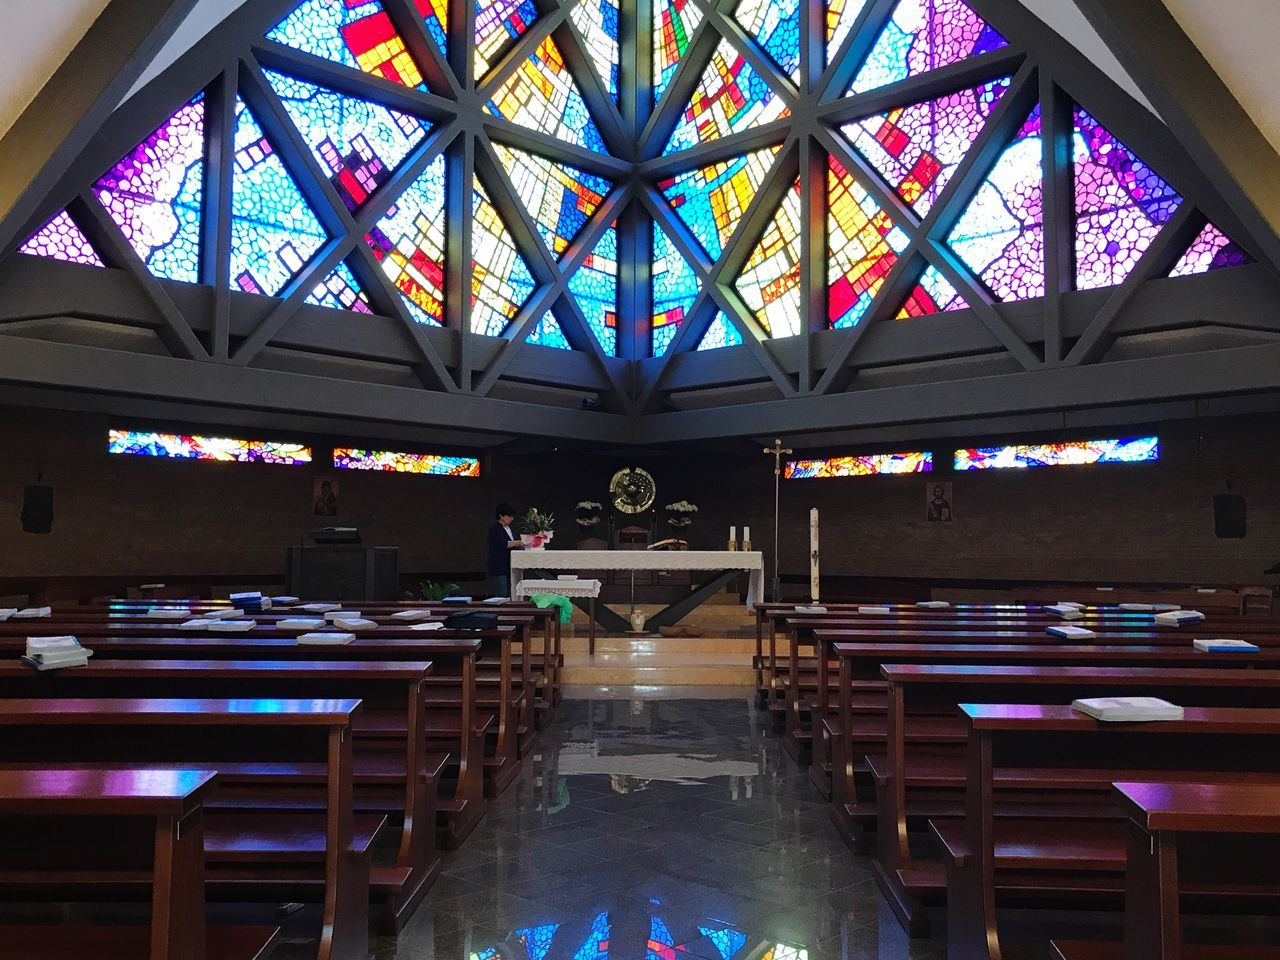 Spirituality Religion Table Indoors  Pew Place Of Worship Seat No People Day Color Religious Architecture Church Multi Colored Window Ceiling Indoors  Architecture Built Structure Vscocam VSCO Lifestyles